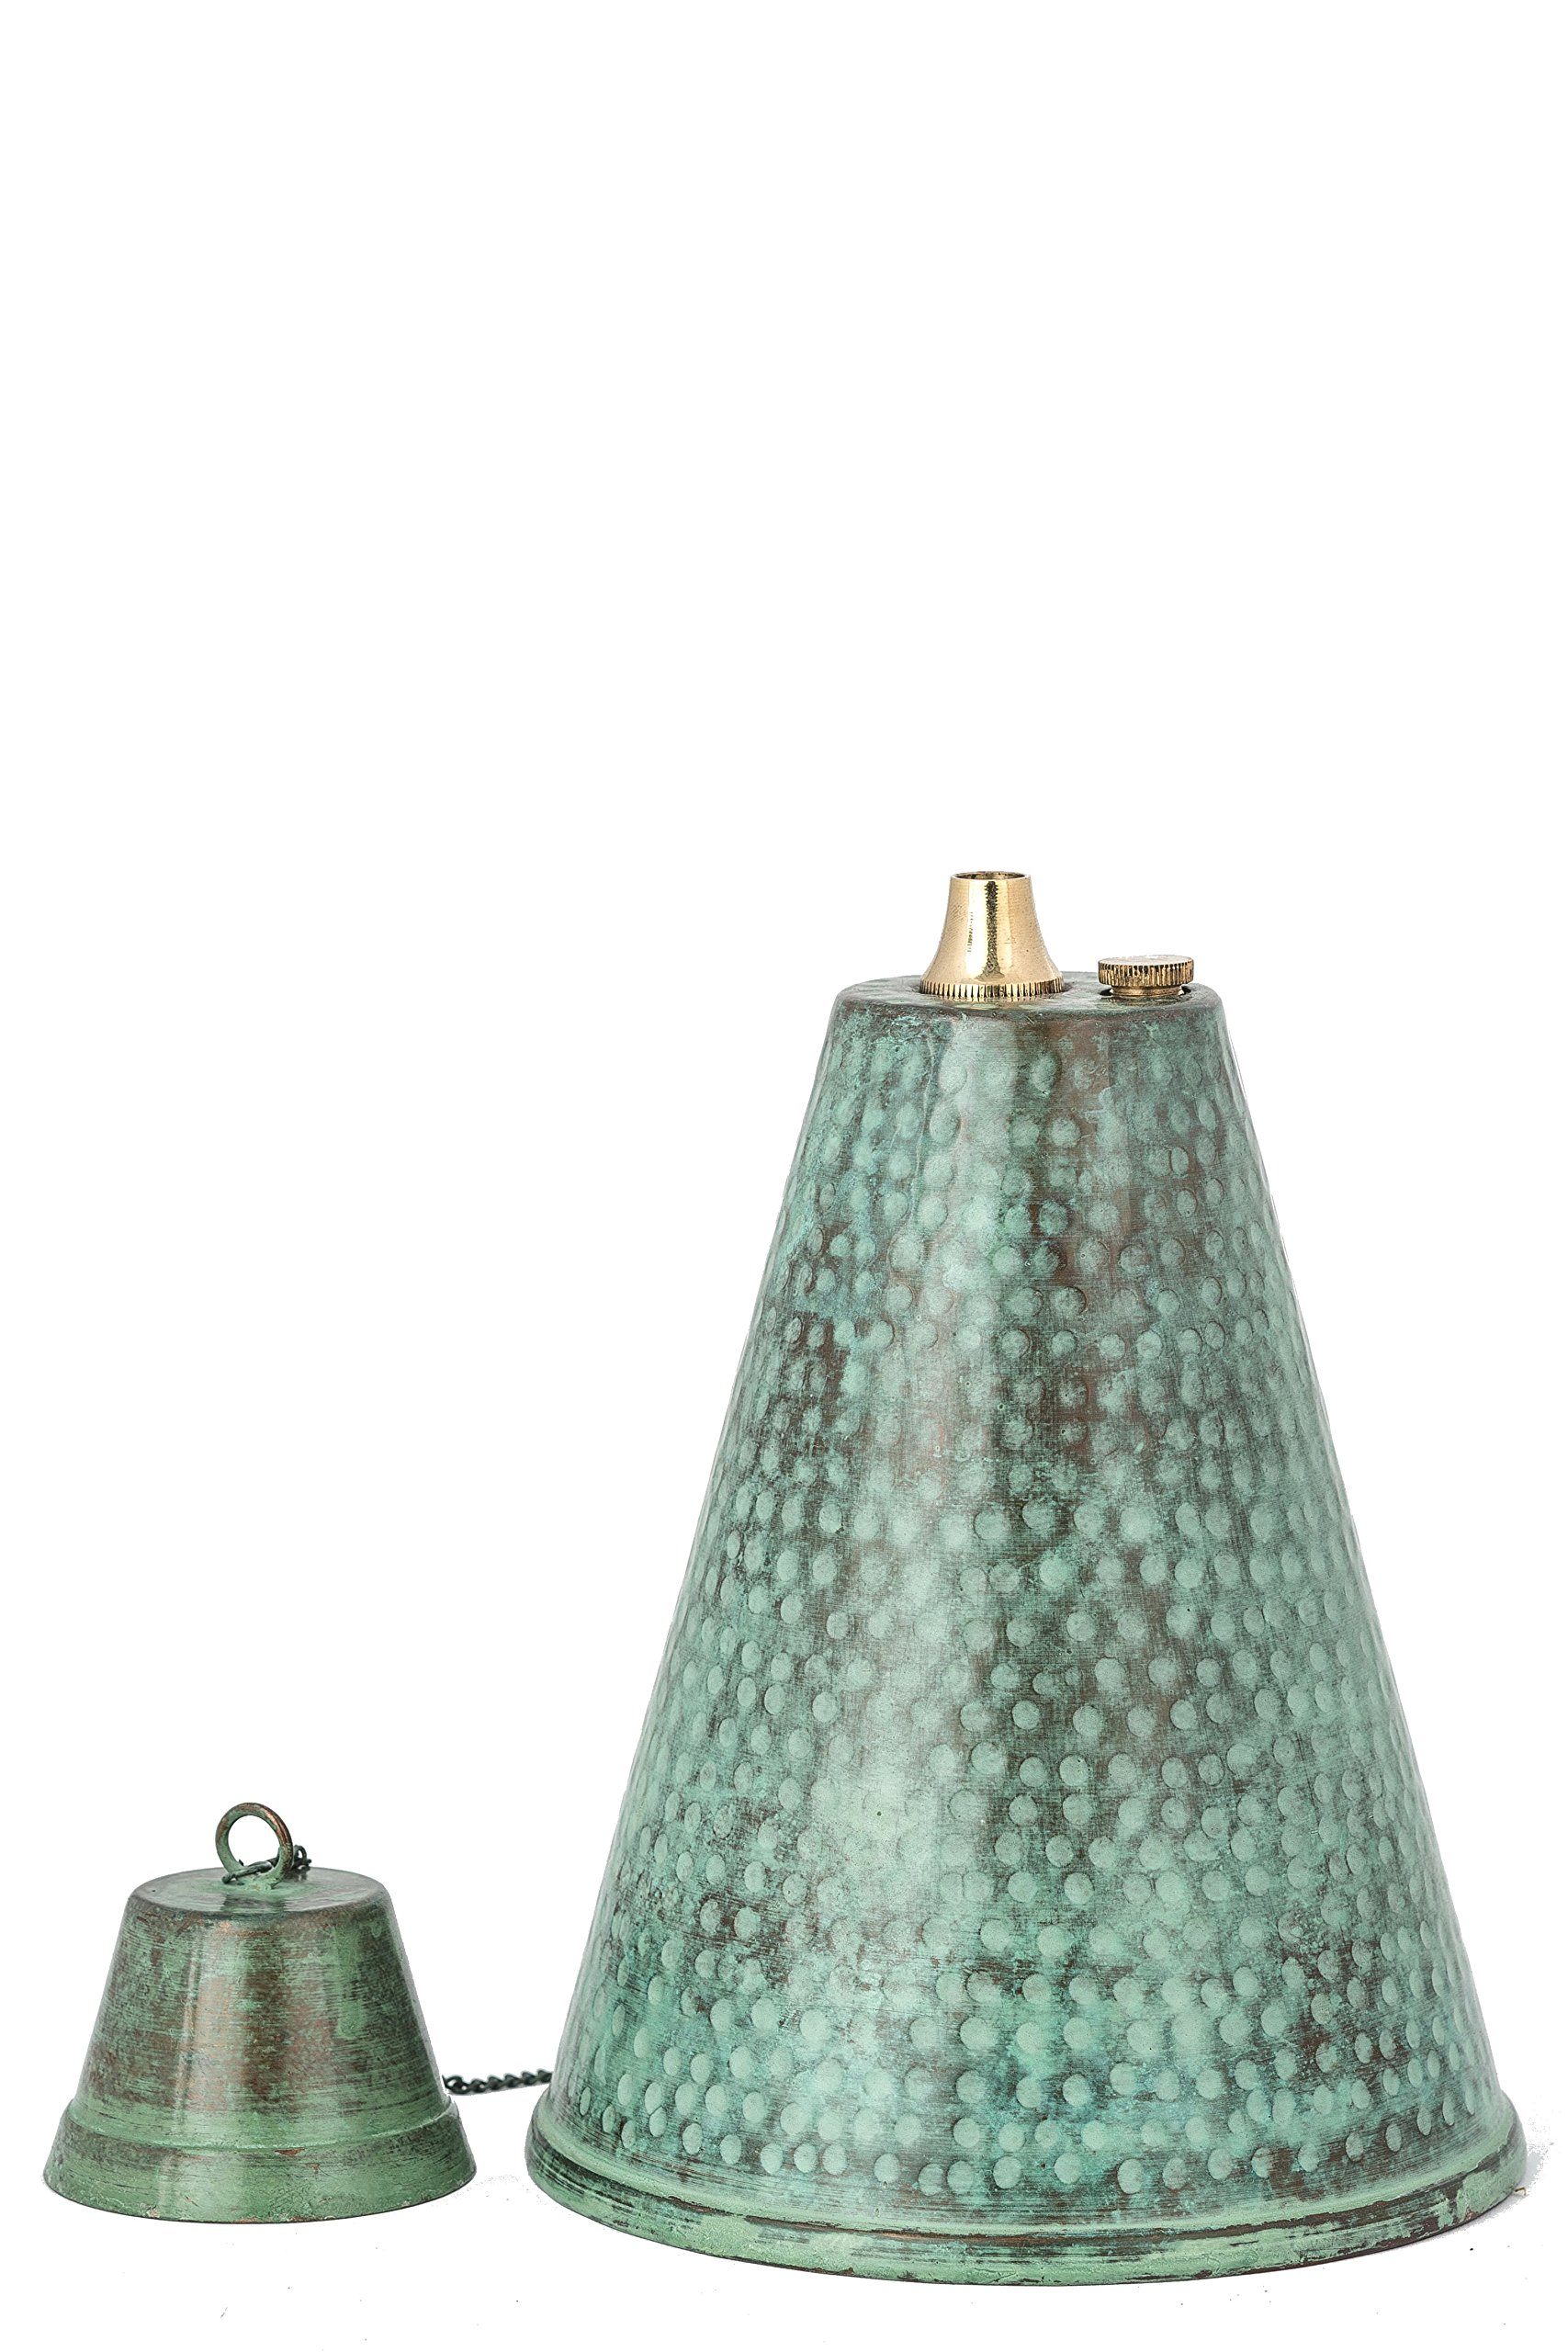 Legends Hawaiian Cone Outdoor Garden Torches with Poles, Set-of-2 (Hammered Patina)